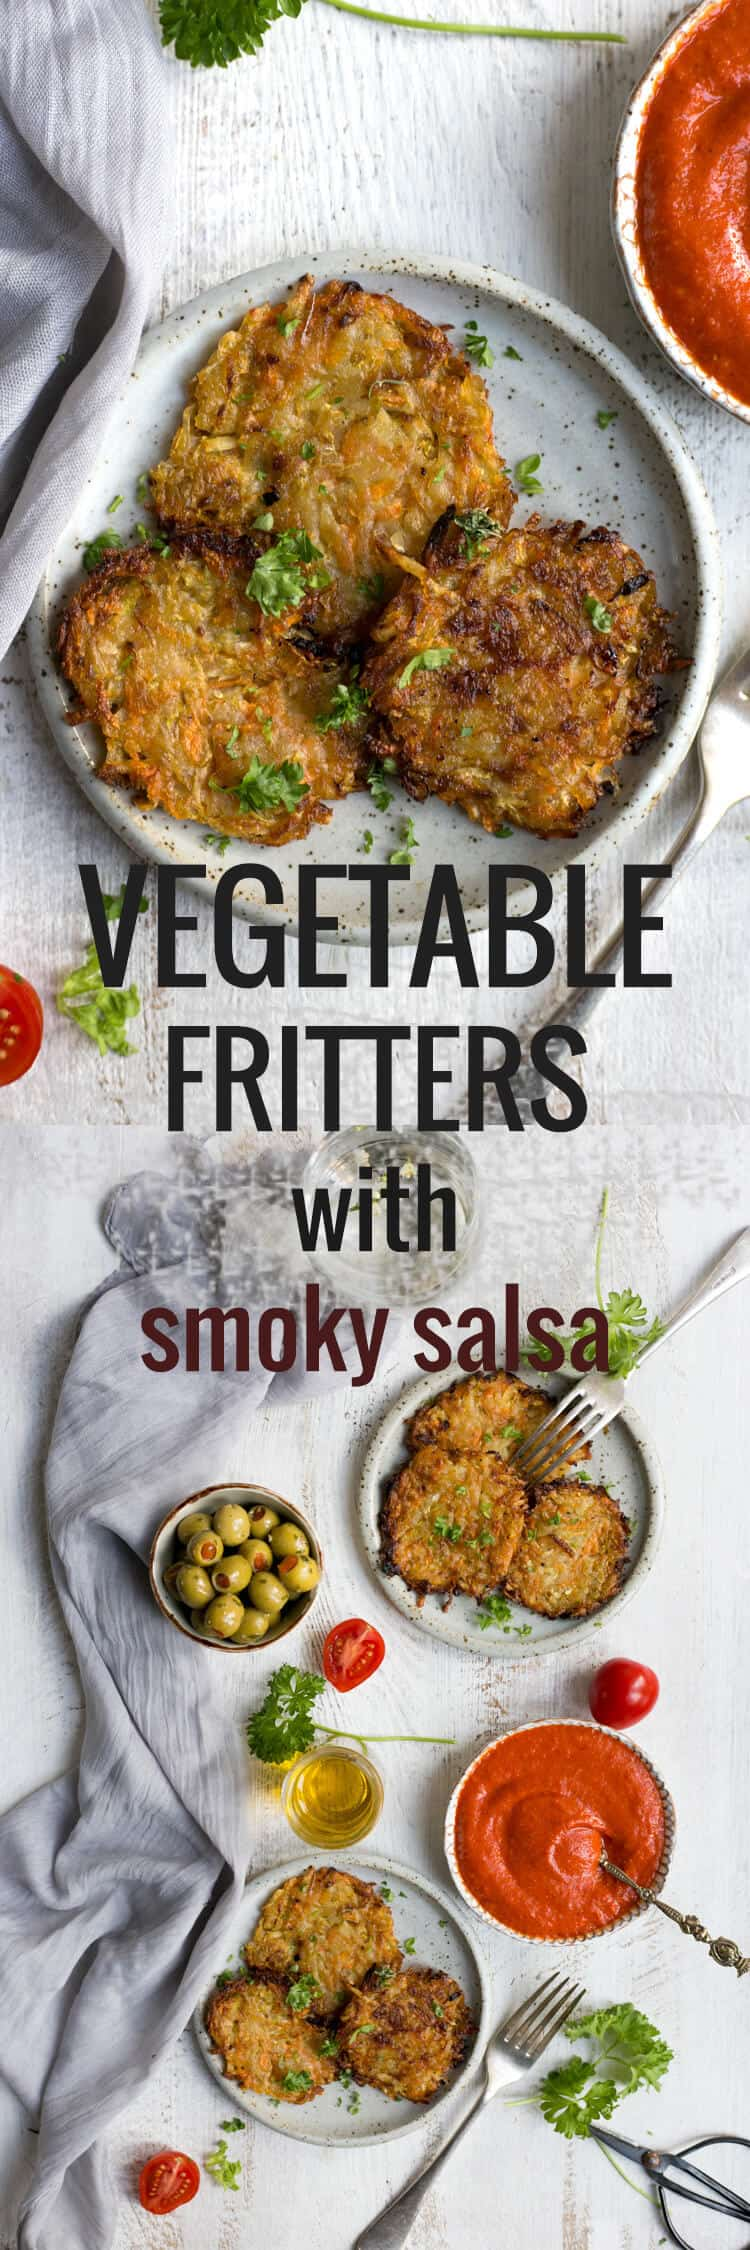 Vegetable fritters with smoky tomato salsa | via @annabanana.co